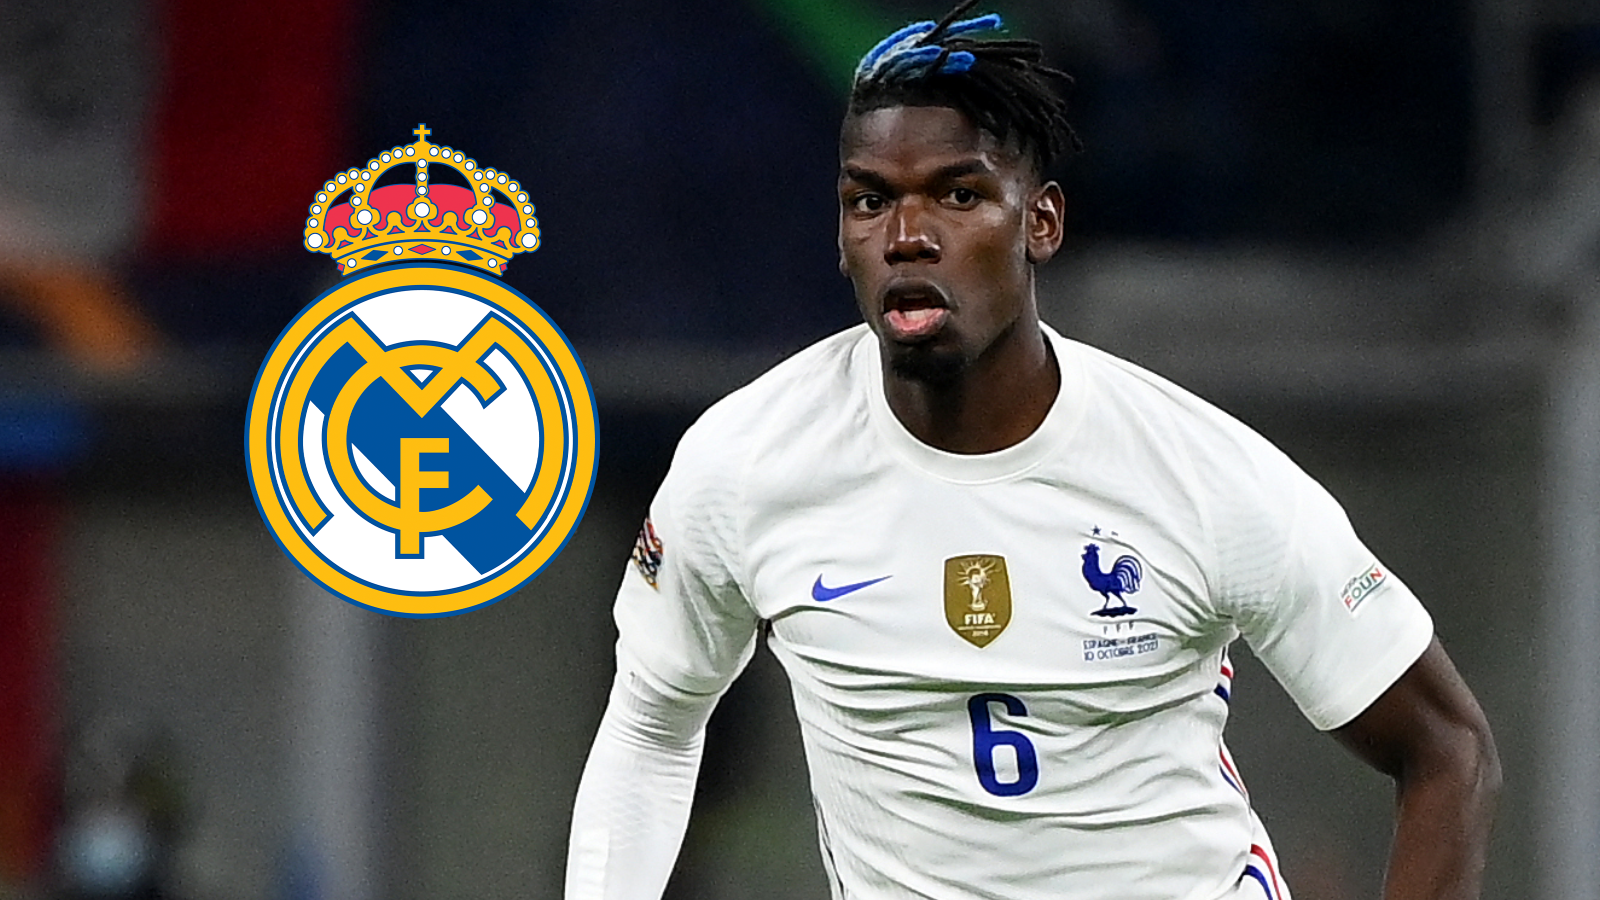 Transfer news and rumours LIVE: Pogba moves closer to Real Madrid transfer